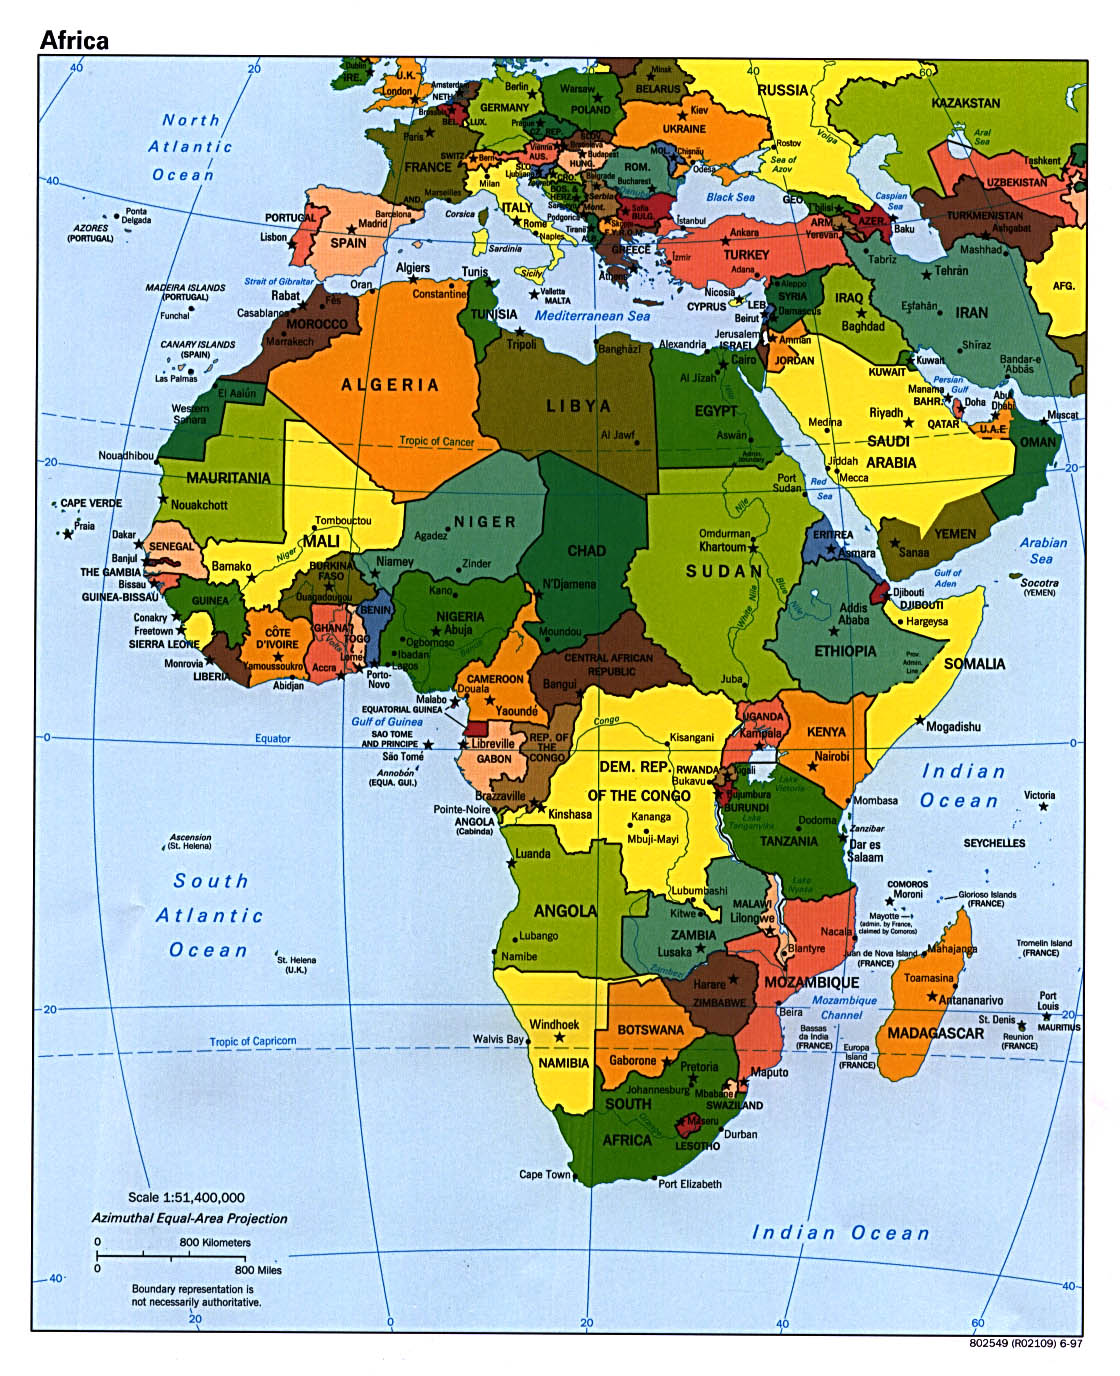 Can you find Sudan on this map? The country has now split into two countries: North Sudan and South Sudan. Kek is from South Sudan.